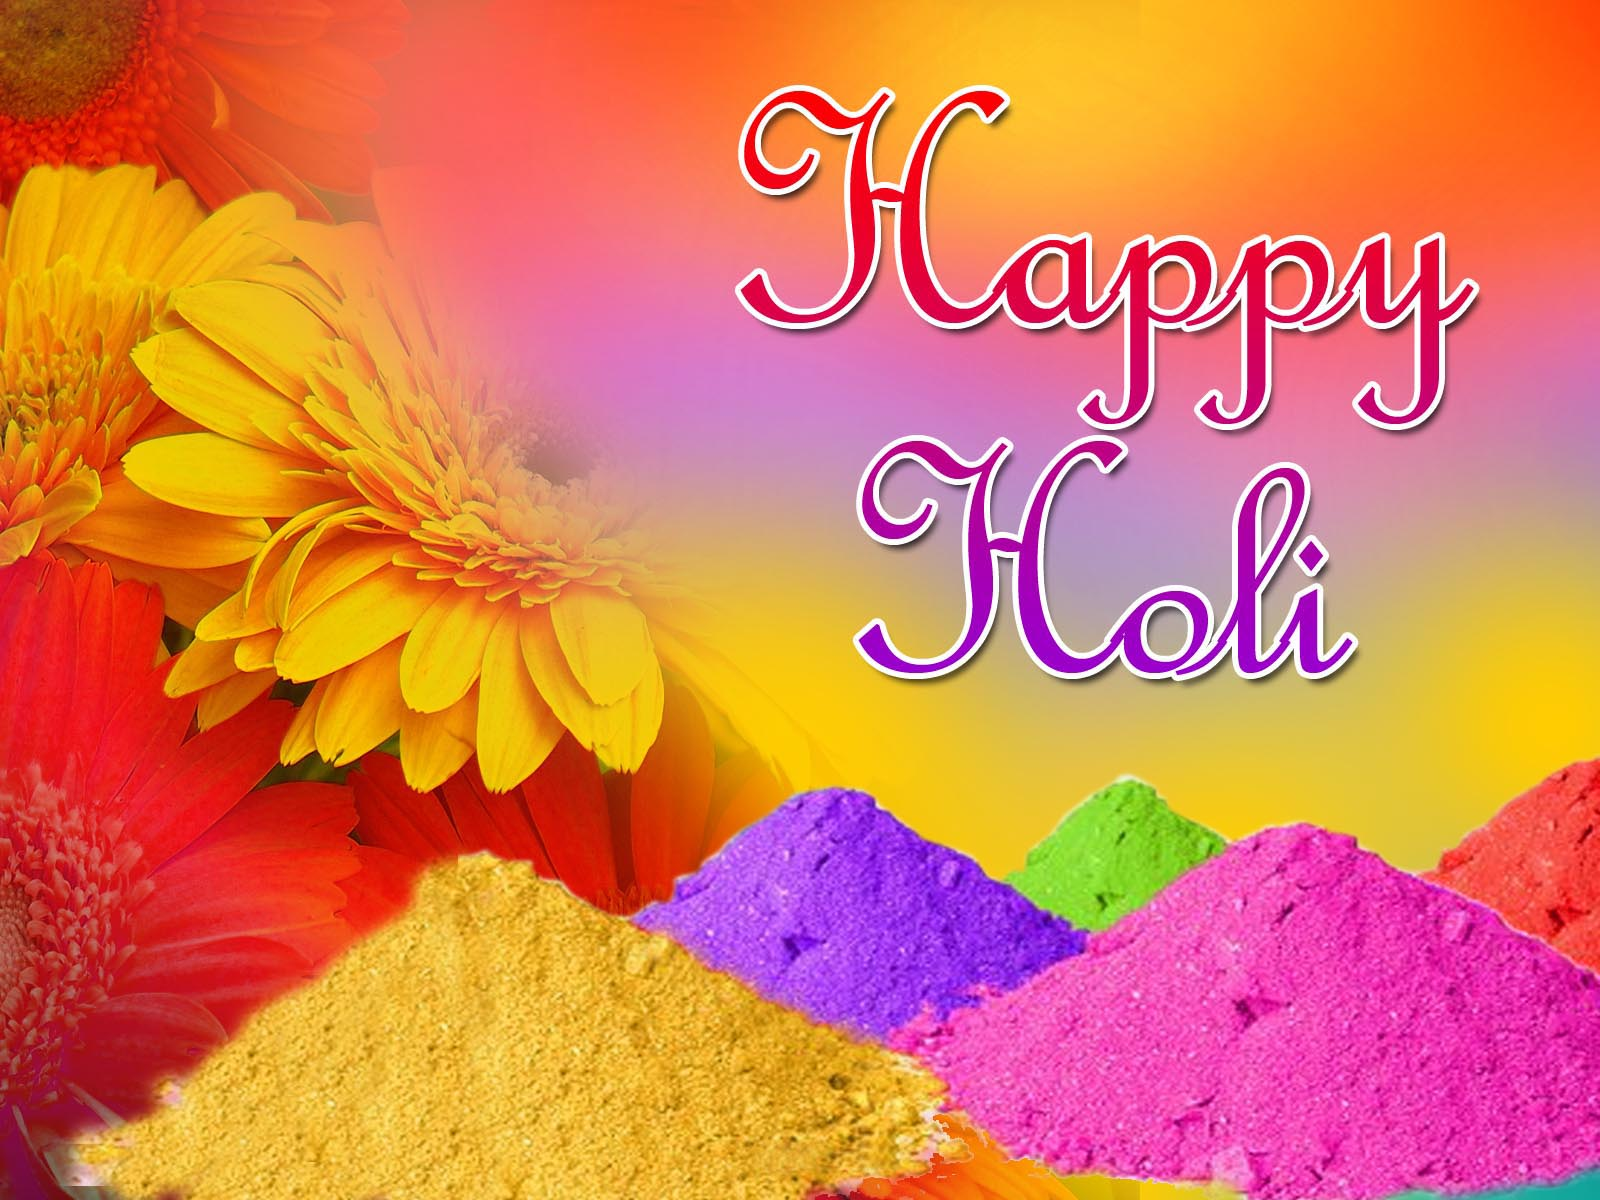 Happy Holi 2016 - Colorful HD wallpapers